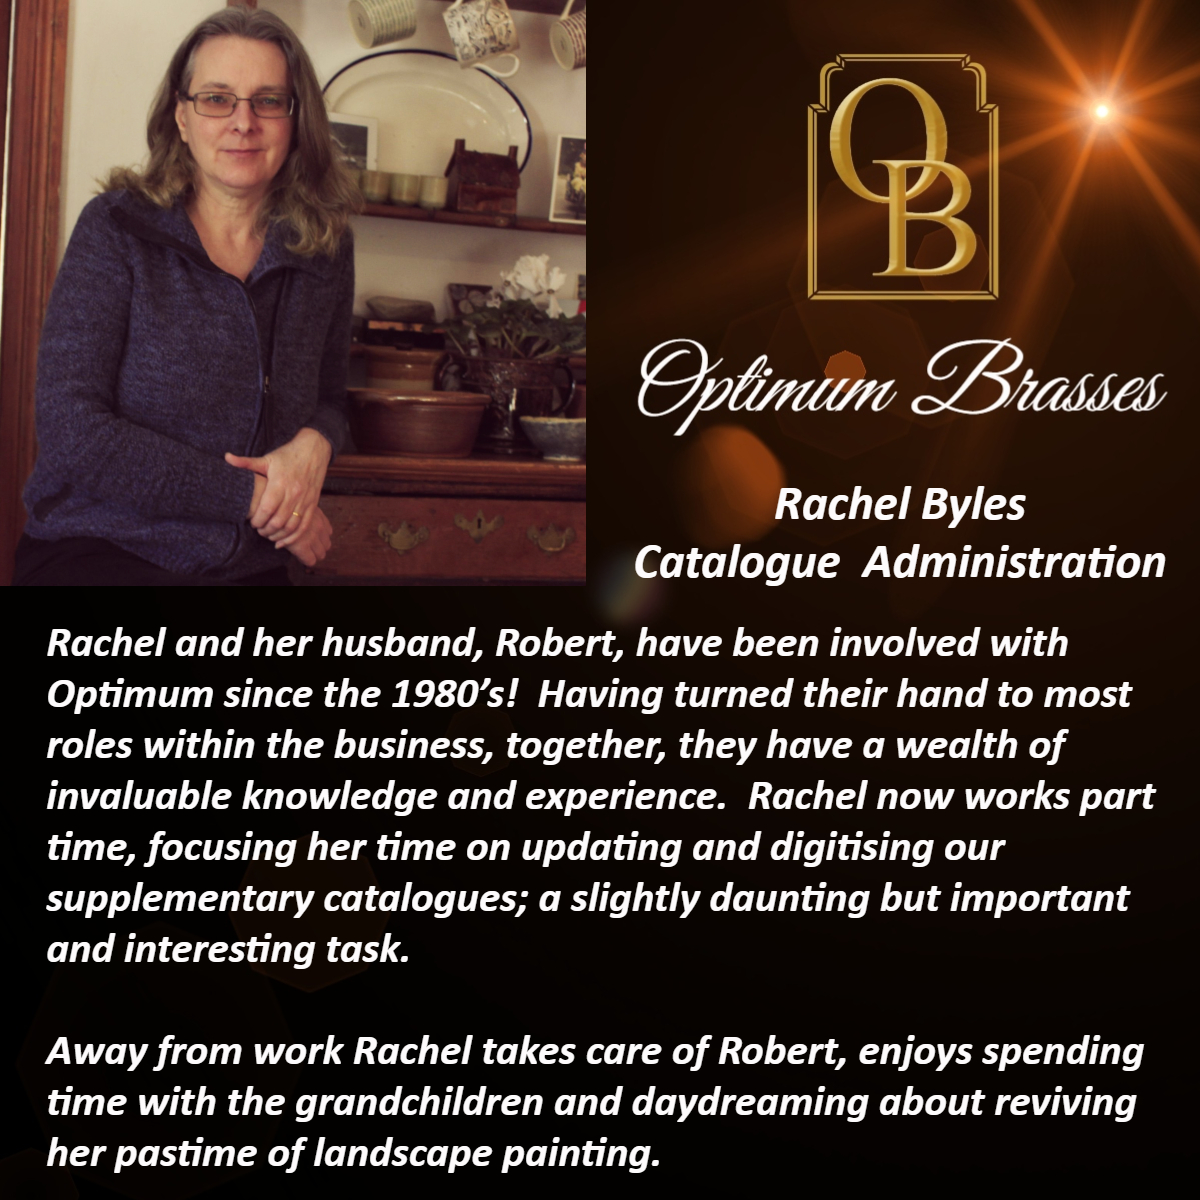 Rachel and her husband, Robert, have been involved with Optimum since the 1980's!  Having turned their hand to most roles within the business, together, they have a wealth of invaluable knowledge and experience.  Rachel now works part time, focusing her time on updating and digitising our supplementary catalogues; a slightly daunting but important and interesting task.  Away from work Rachel takes care of Robert, enjoys spending time with the grandchildren and daydreaming about reviving her pastime of landscape painting.